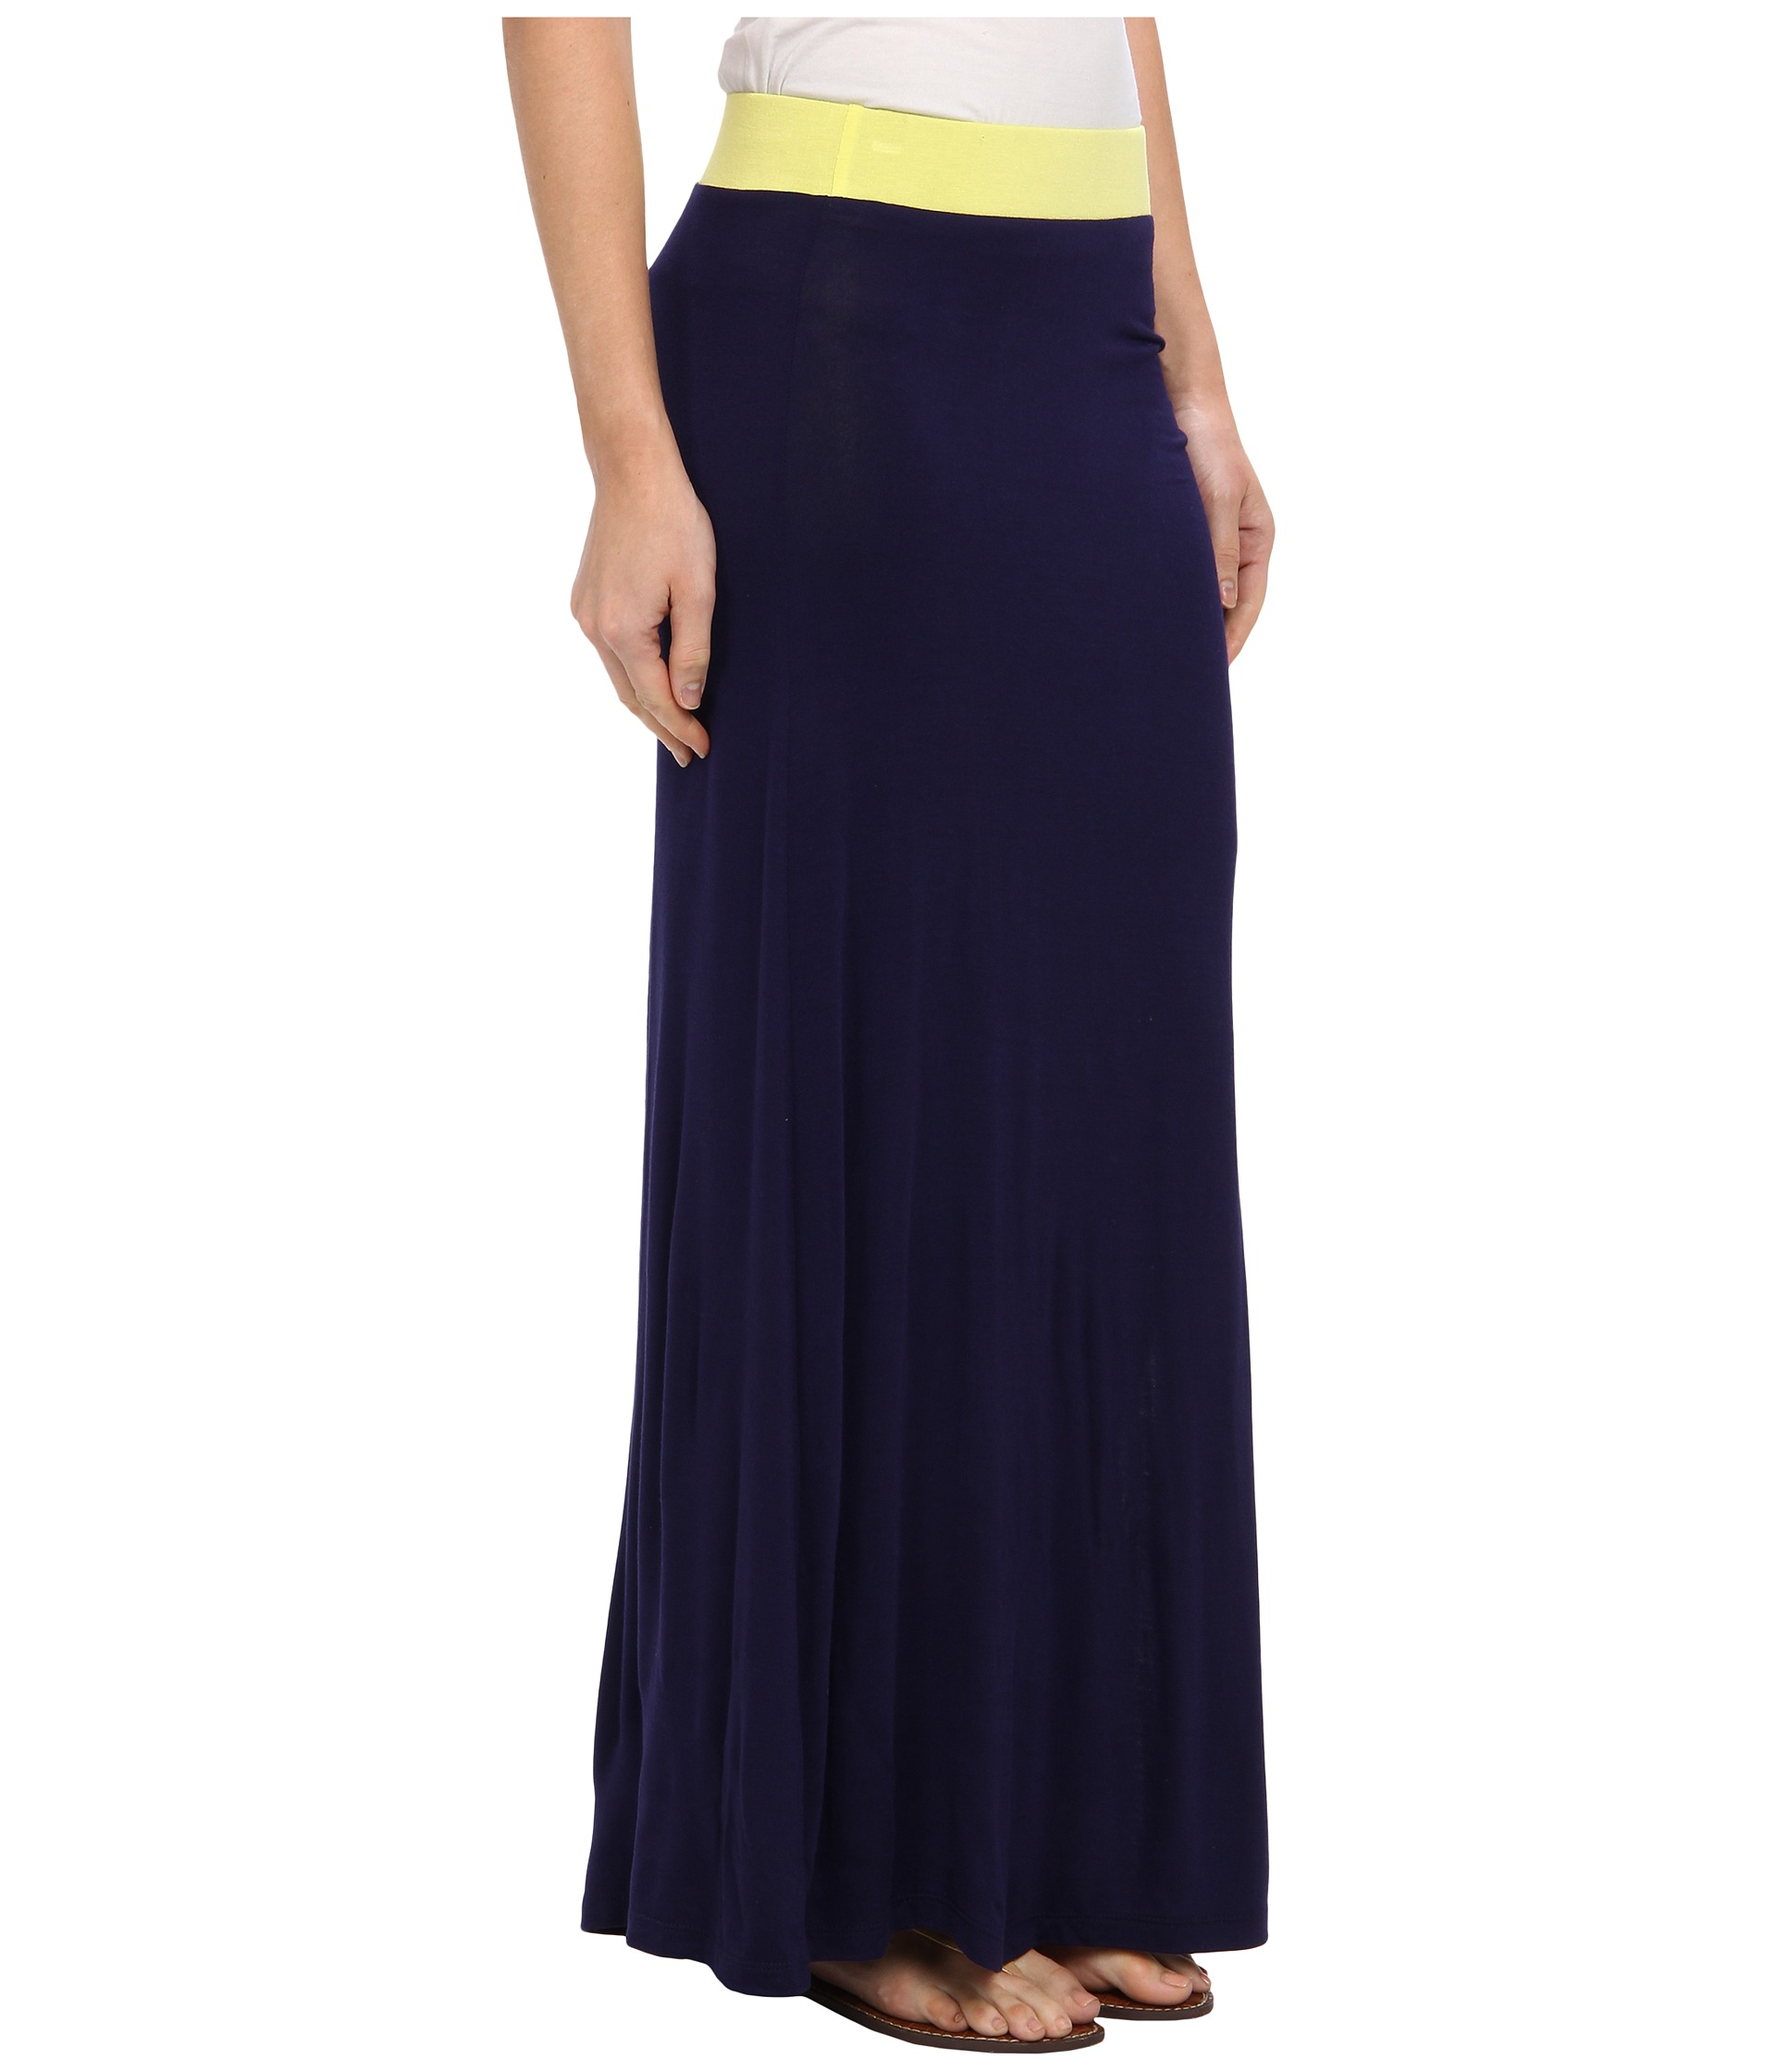 gabriella rocha side slit maxi skirt citron navy shipped